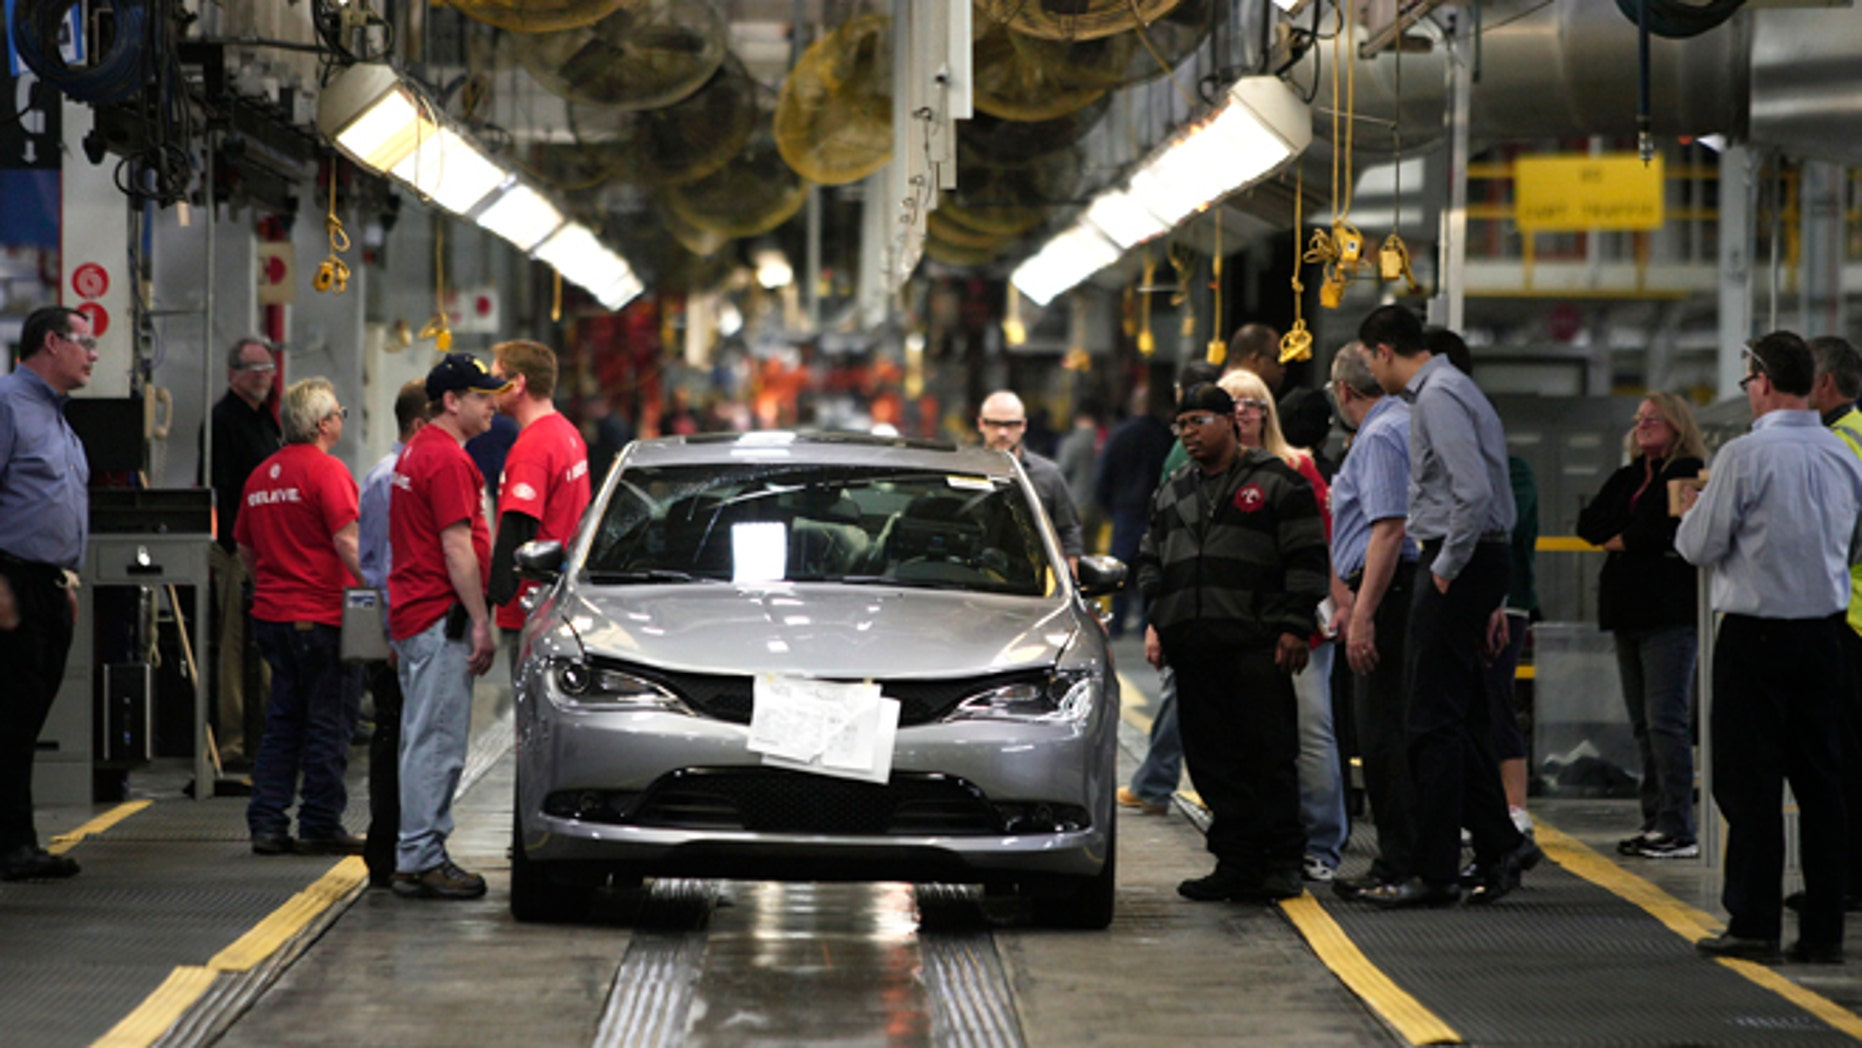 STERLING HEIGHTS, MI - MARCH 14: The new 2015 Chrysler 200 comes off the assembly line at the Sterling Heights Assembly Plant March 14, 2014 in Sterling Heights, Michigan. The plant, originally slated for closure in 2010, was transformed by an investment of more than $1 billion and is now one of the Chrysler Group's largest and most technologically advanced, with more than 5 million square feet of manufacturing space. (Photo by Bill Pugliano/Getty Images)